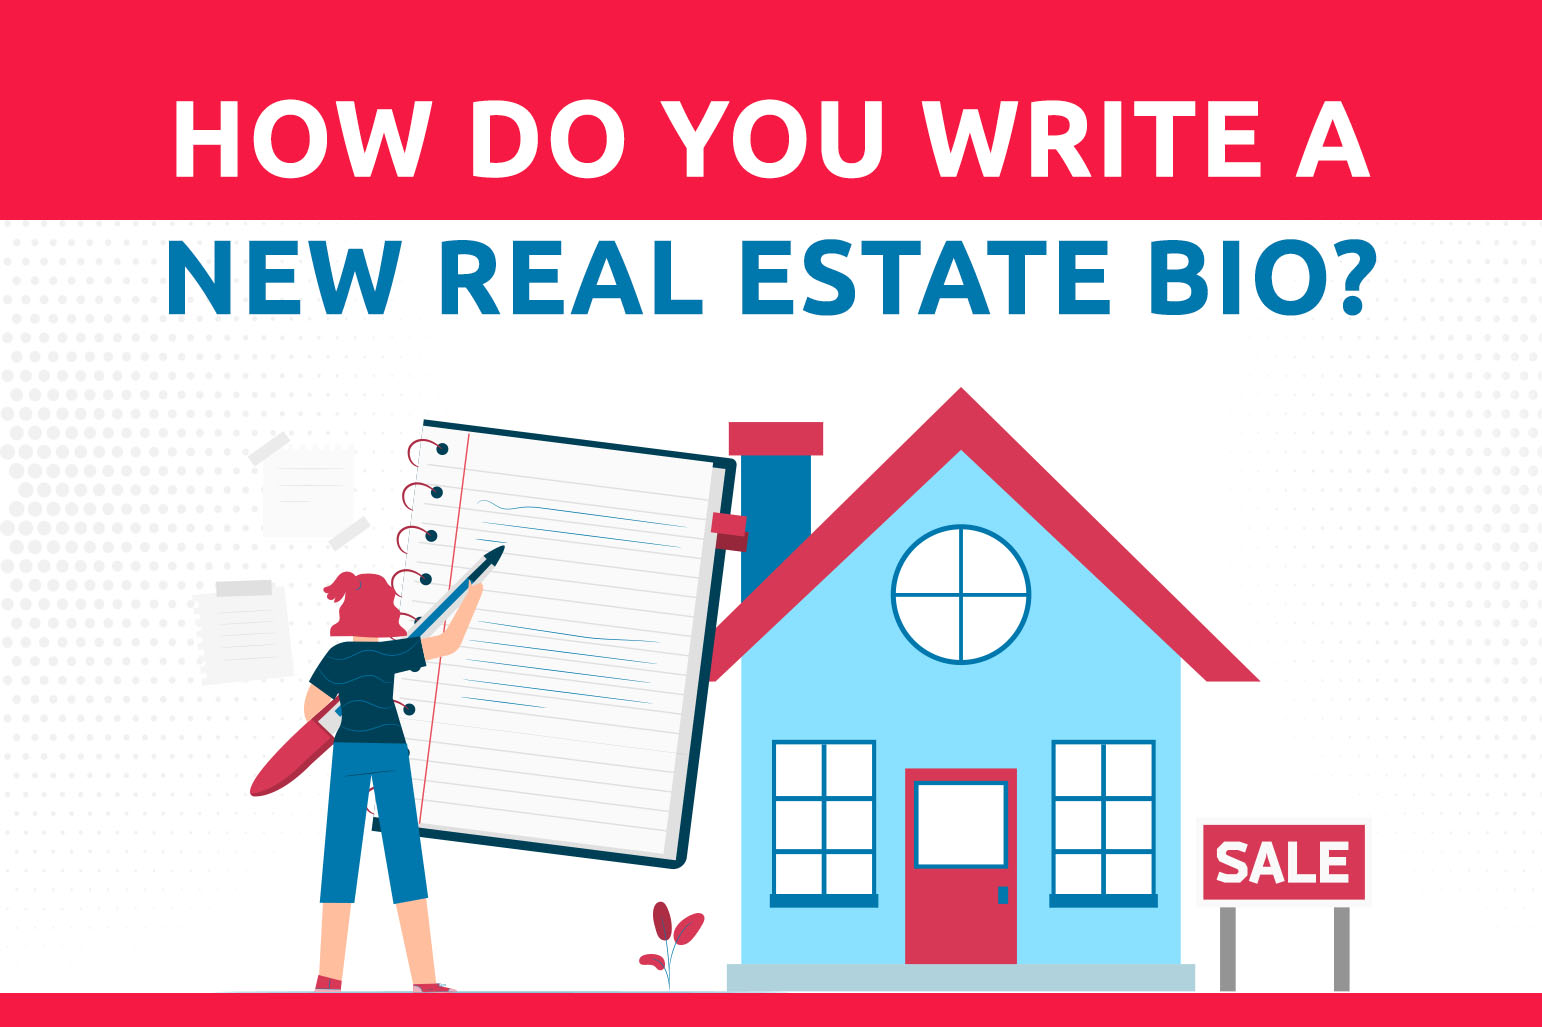 How Do You Write A New Real Estate Bio?